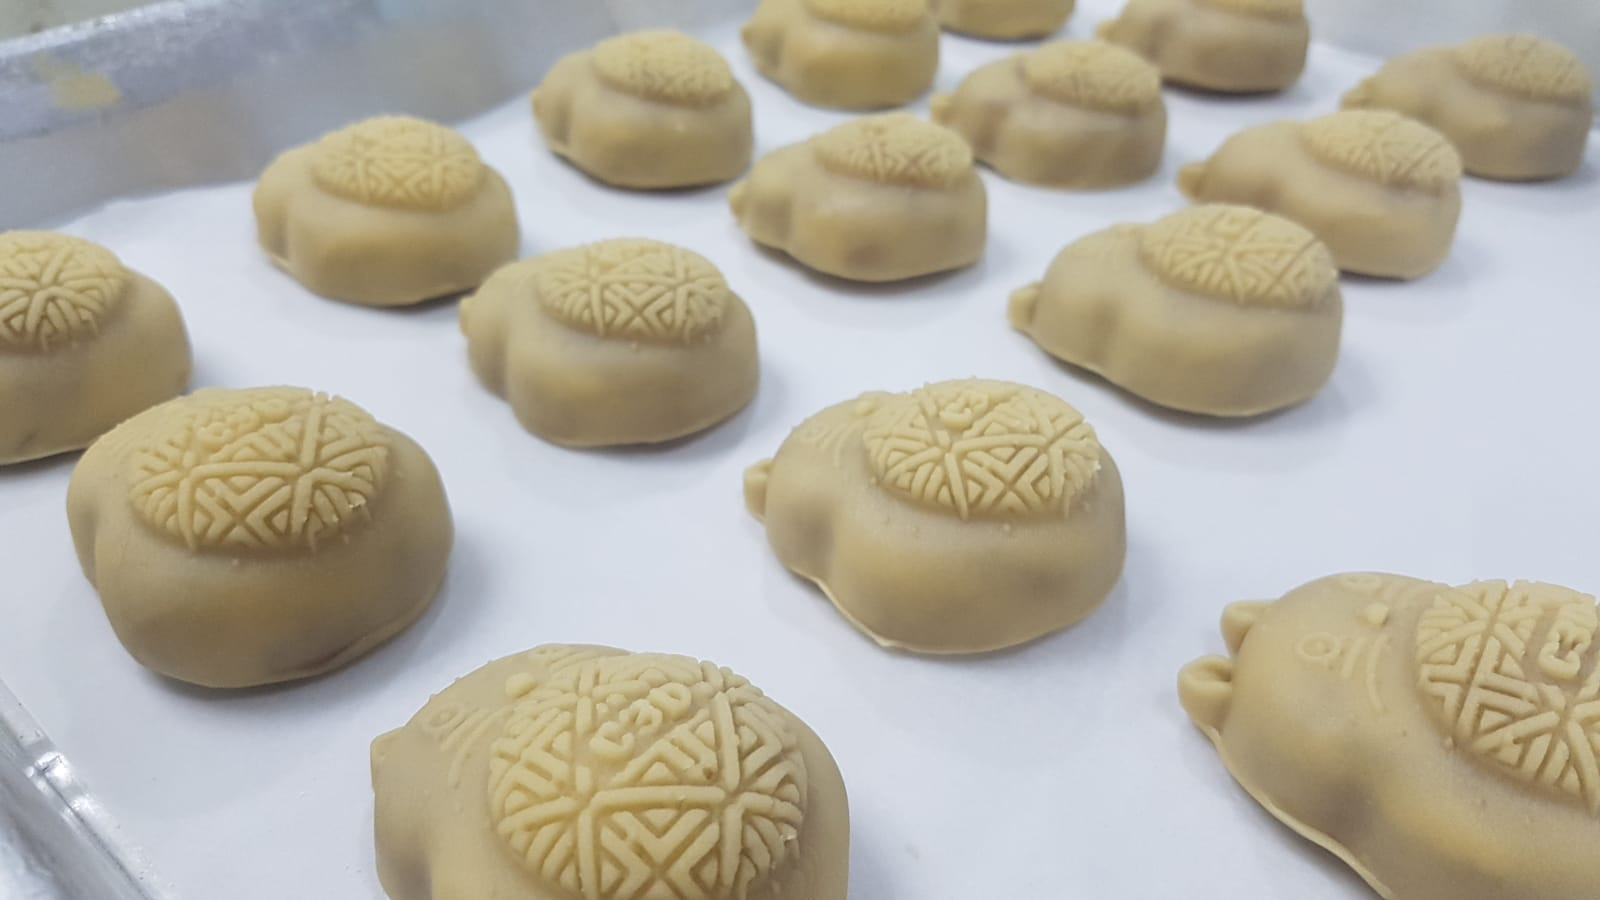 Mooncakes molded with 3D printed molds.